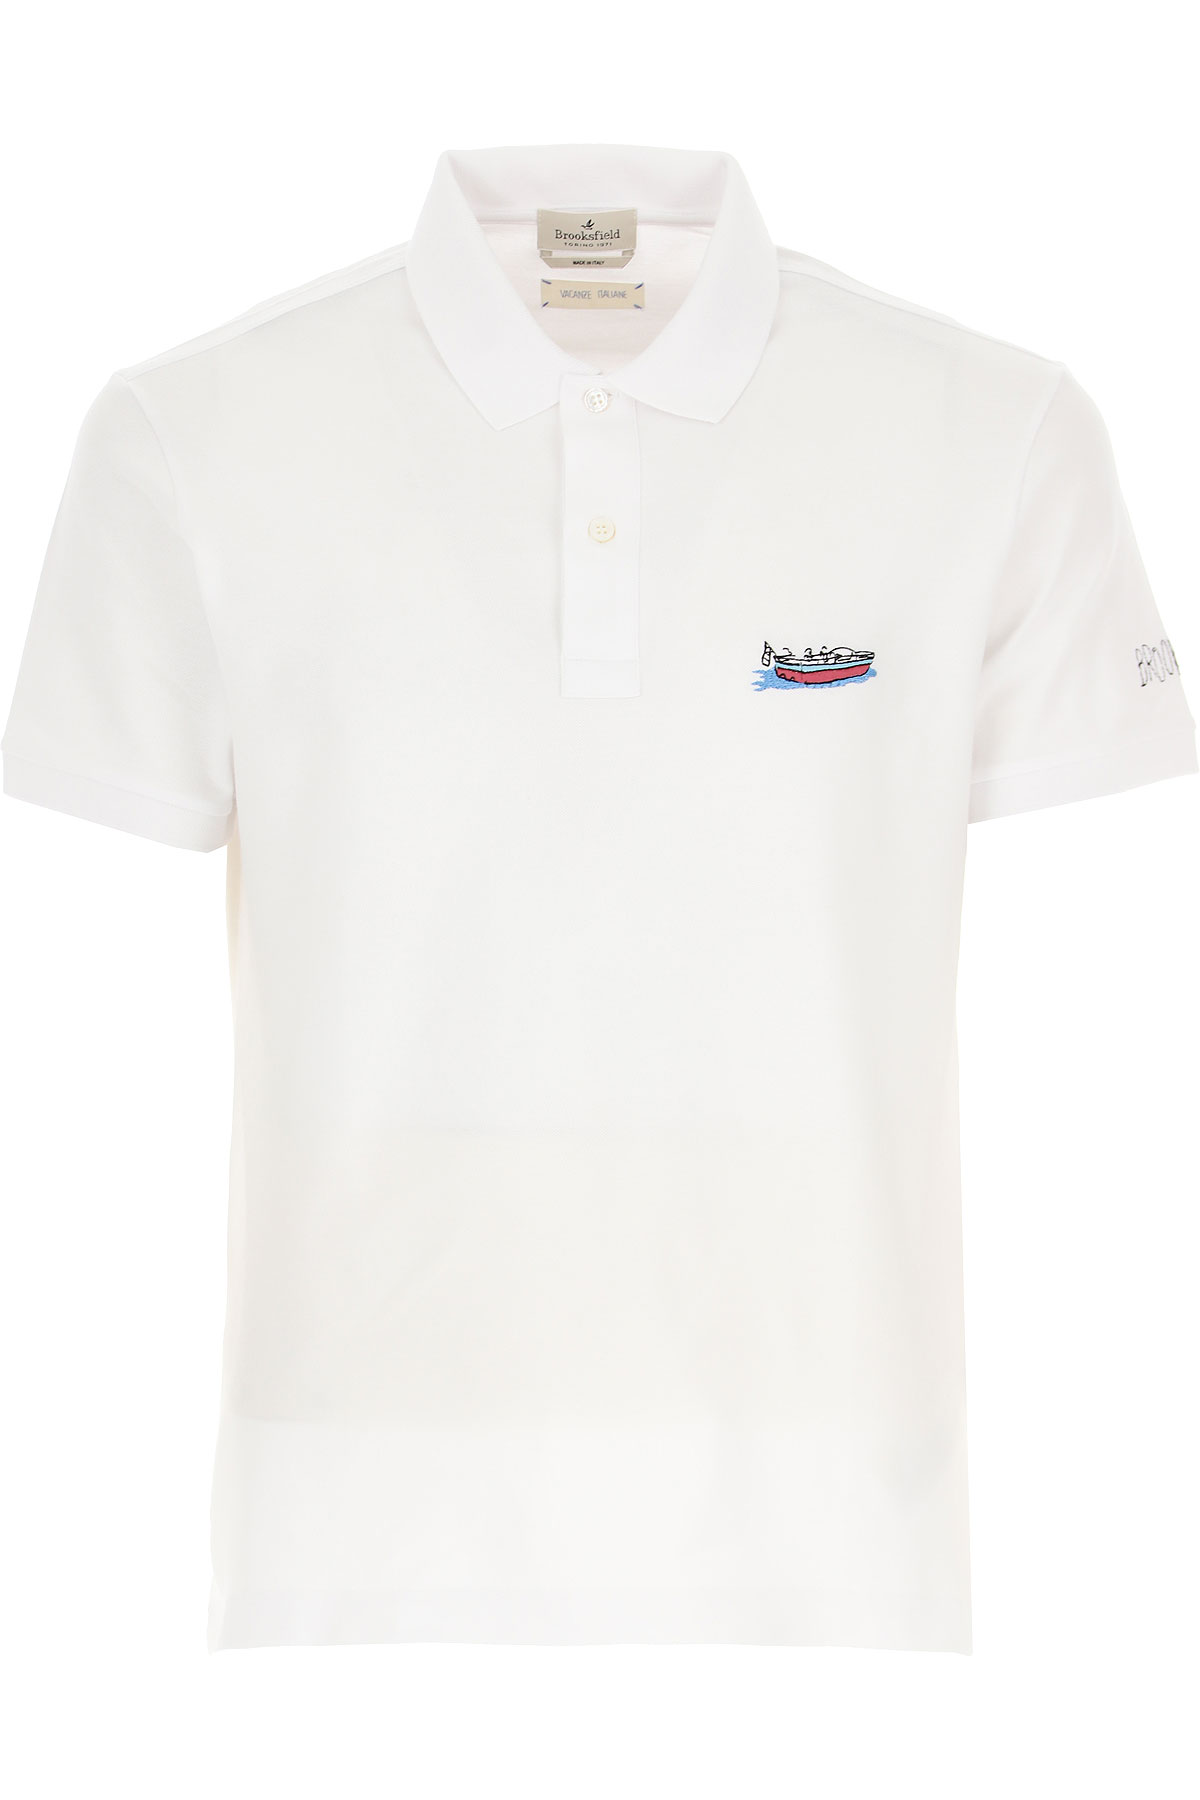 Brooksfield Polo Shirt for Men On Sale, White, Cotton, 2019, L M XL XXL